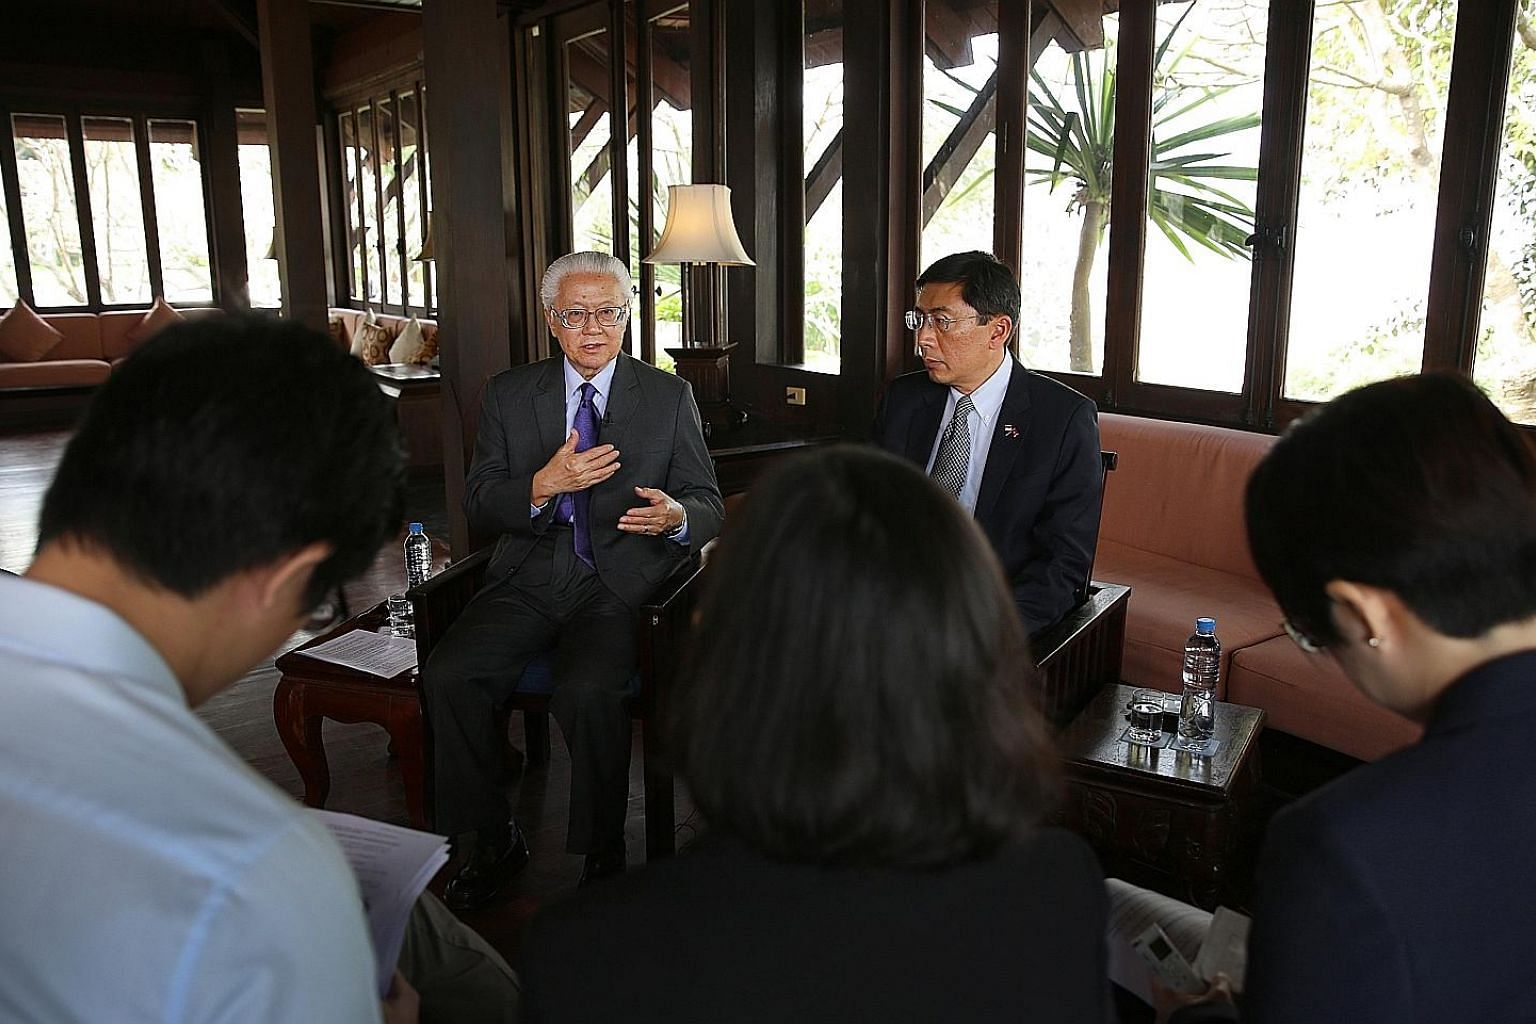 President Tan and Ambassador Dominic Goh at a media briefing in Luang Prabang, Laos. Dr Tan's latest visits to Cambodia and Laos mean he has visited all nine other Asean members as President.